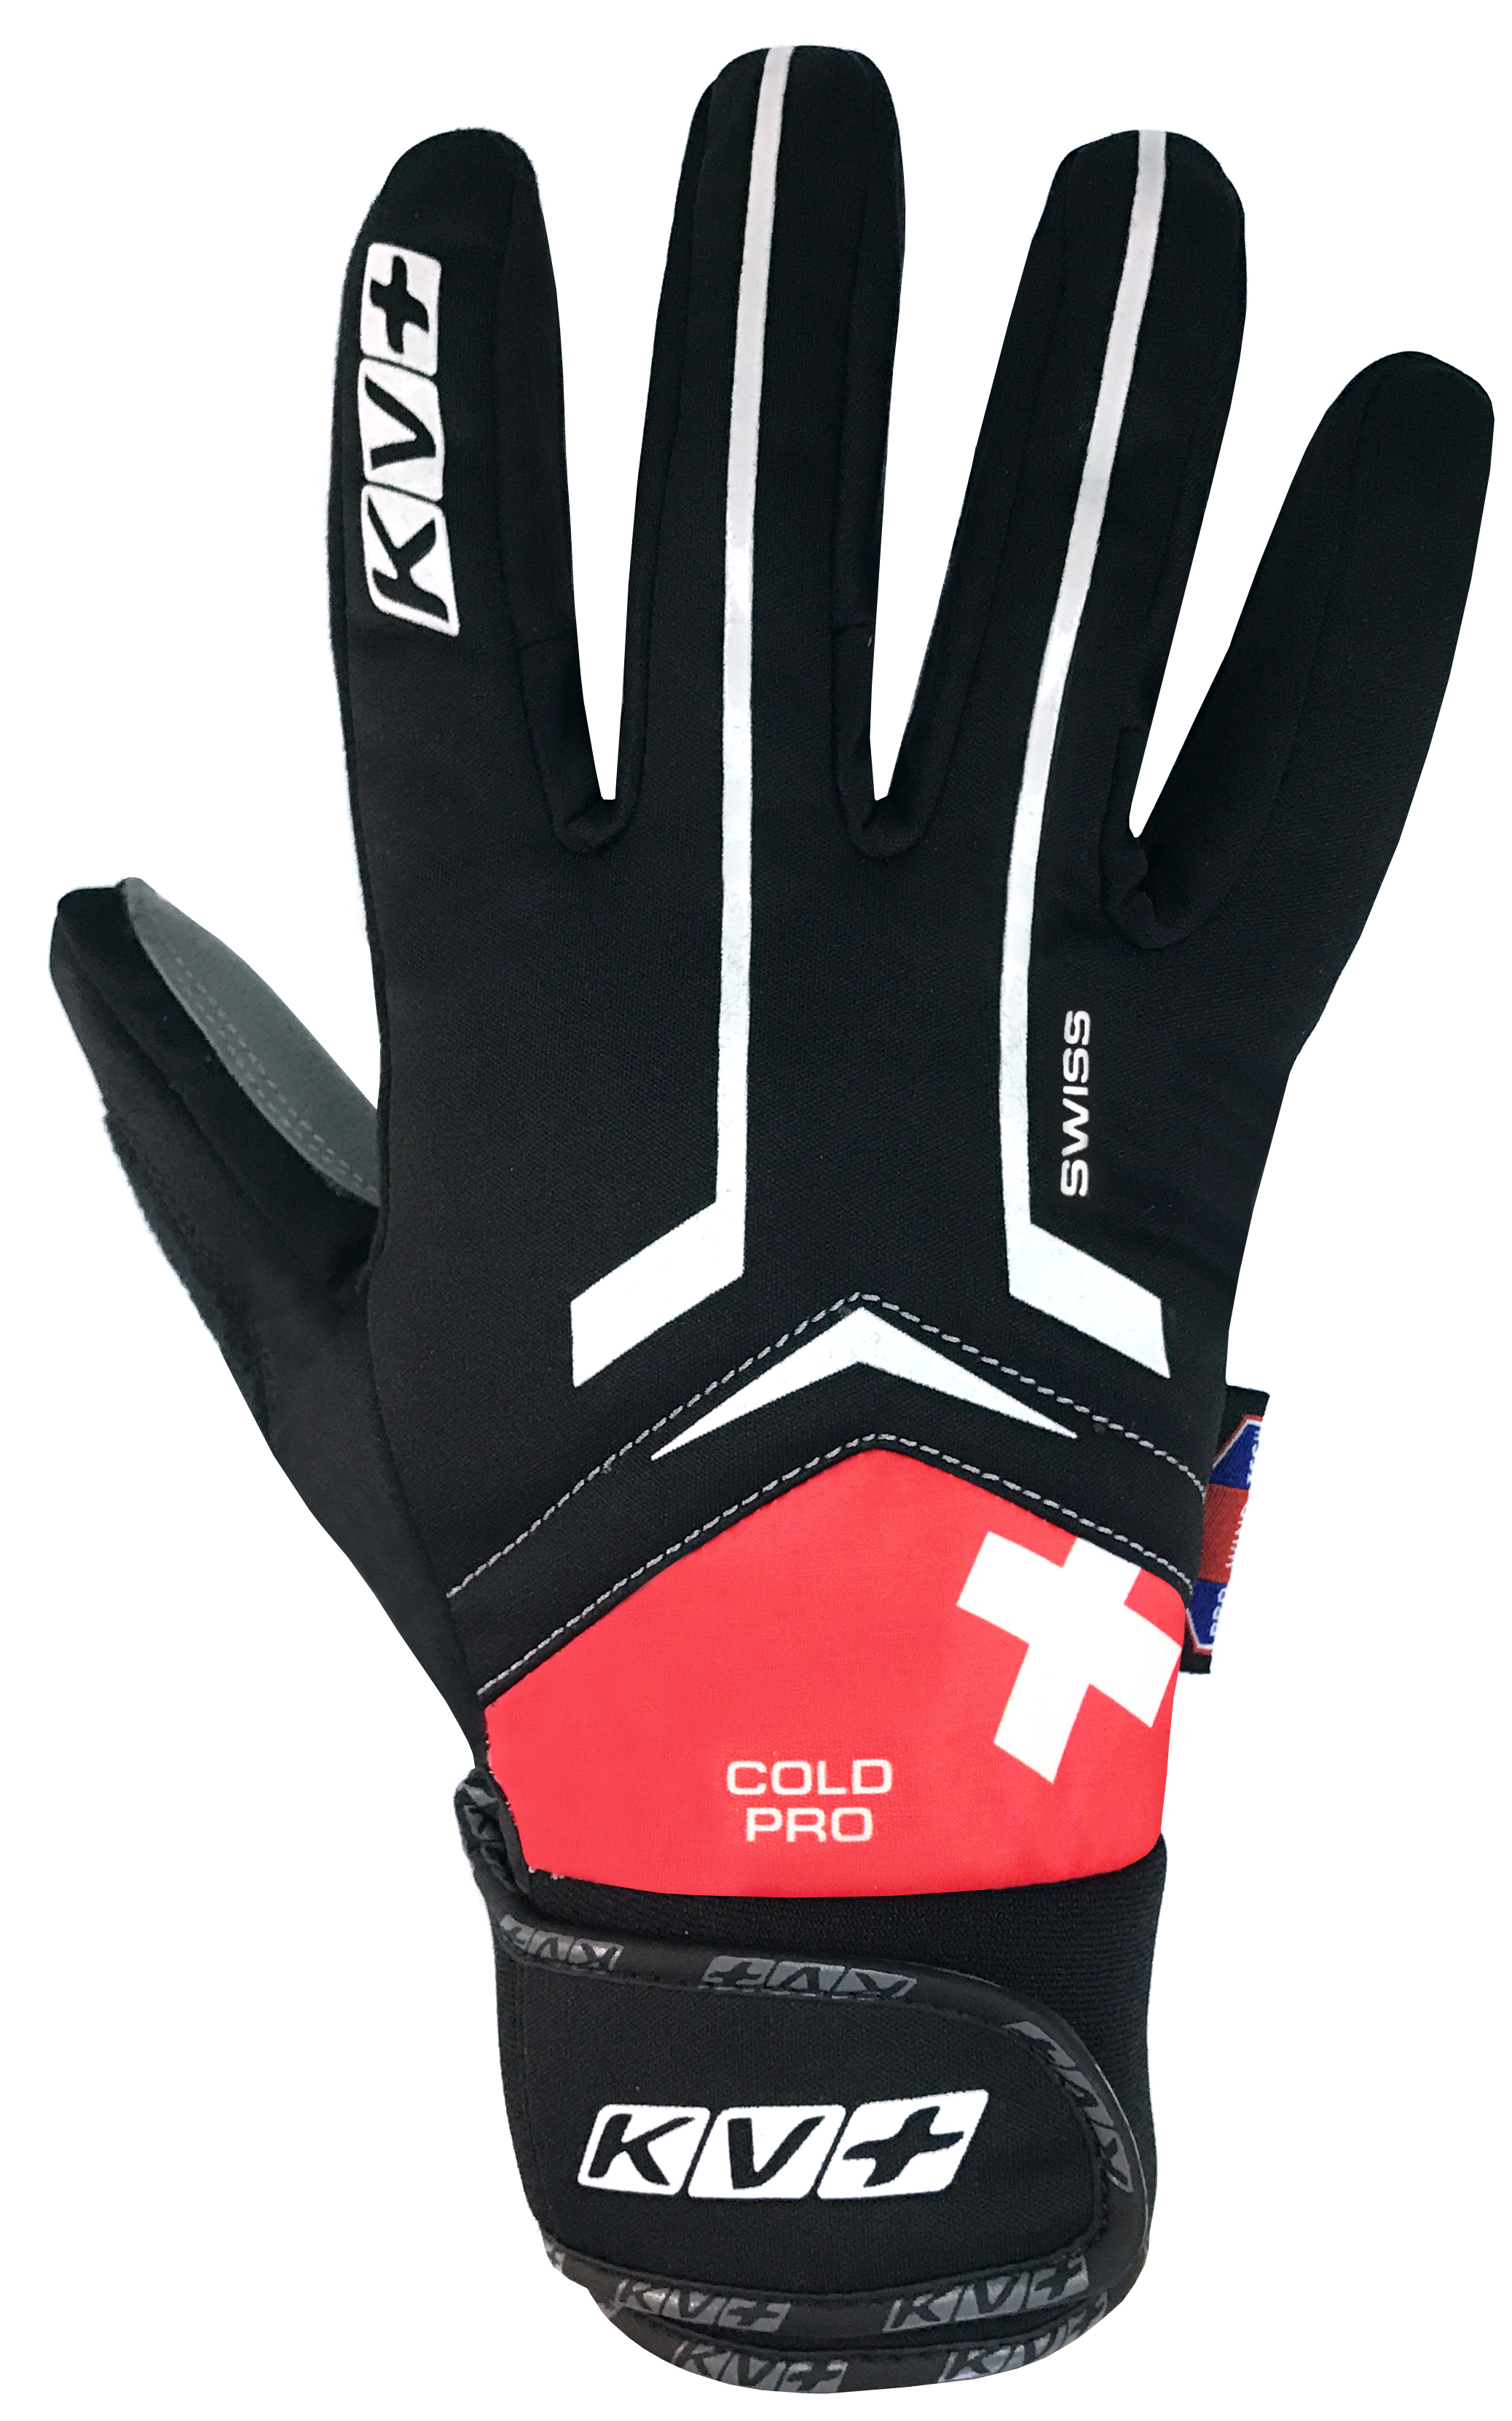 KV+ XC COLD PRO GLOVES WIND TECH SWISS – black/red 7G05-S